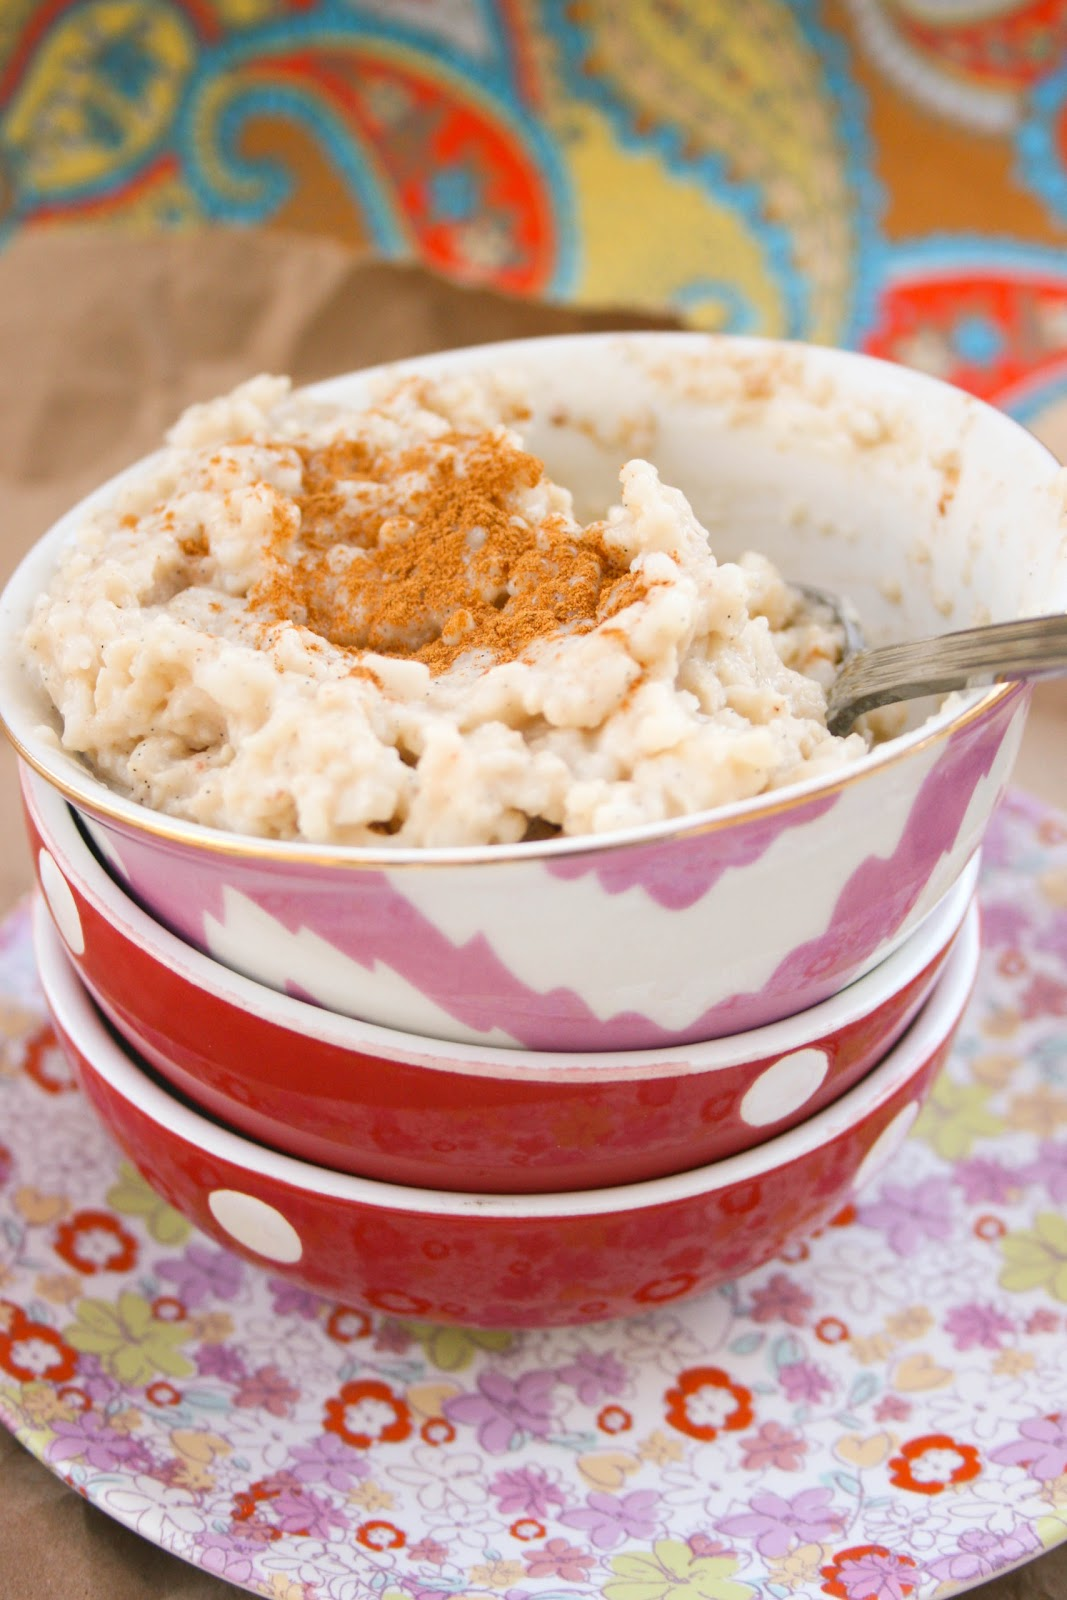 Coconut Milk Rice Pudding (she: Krissy) - Or so she says...